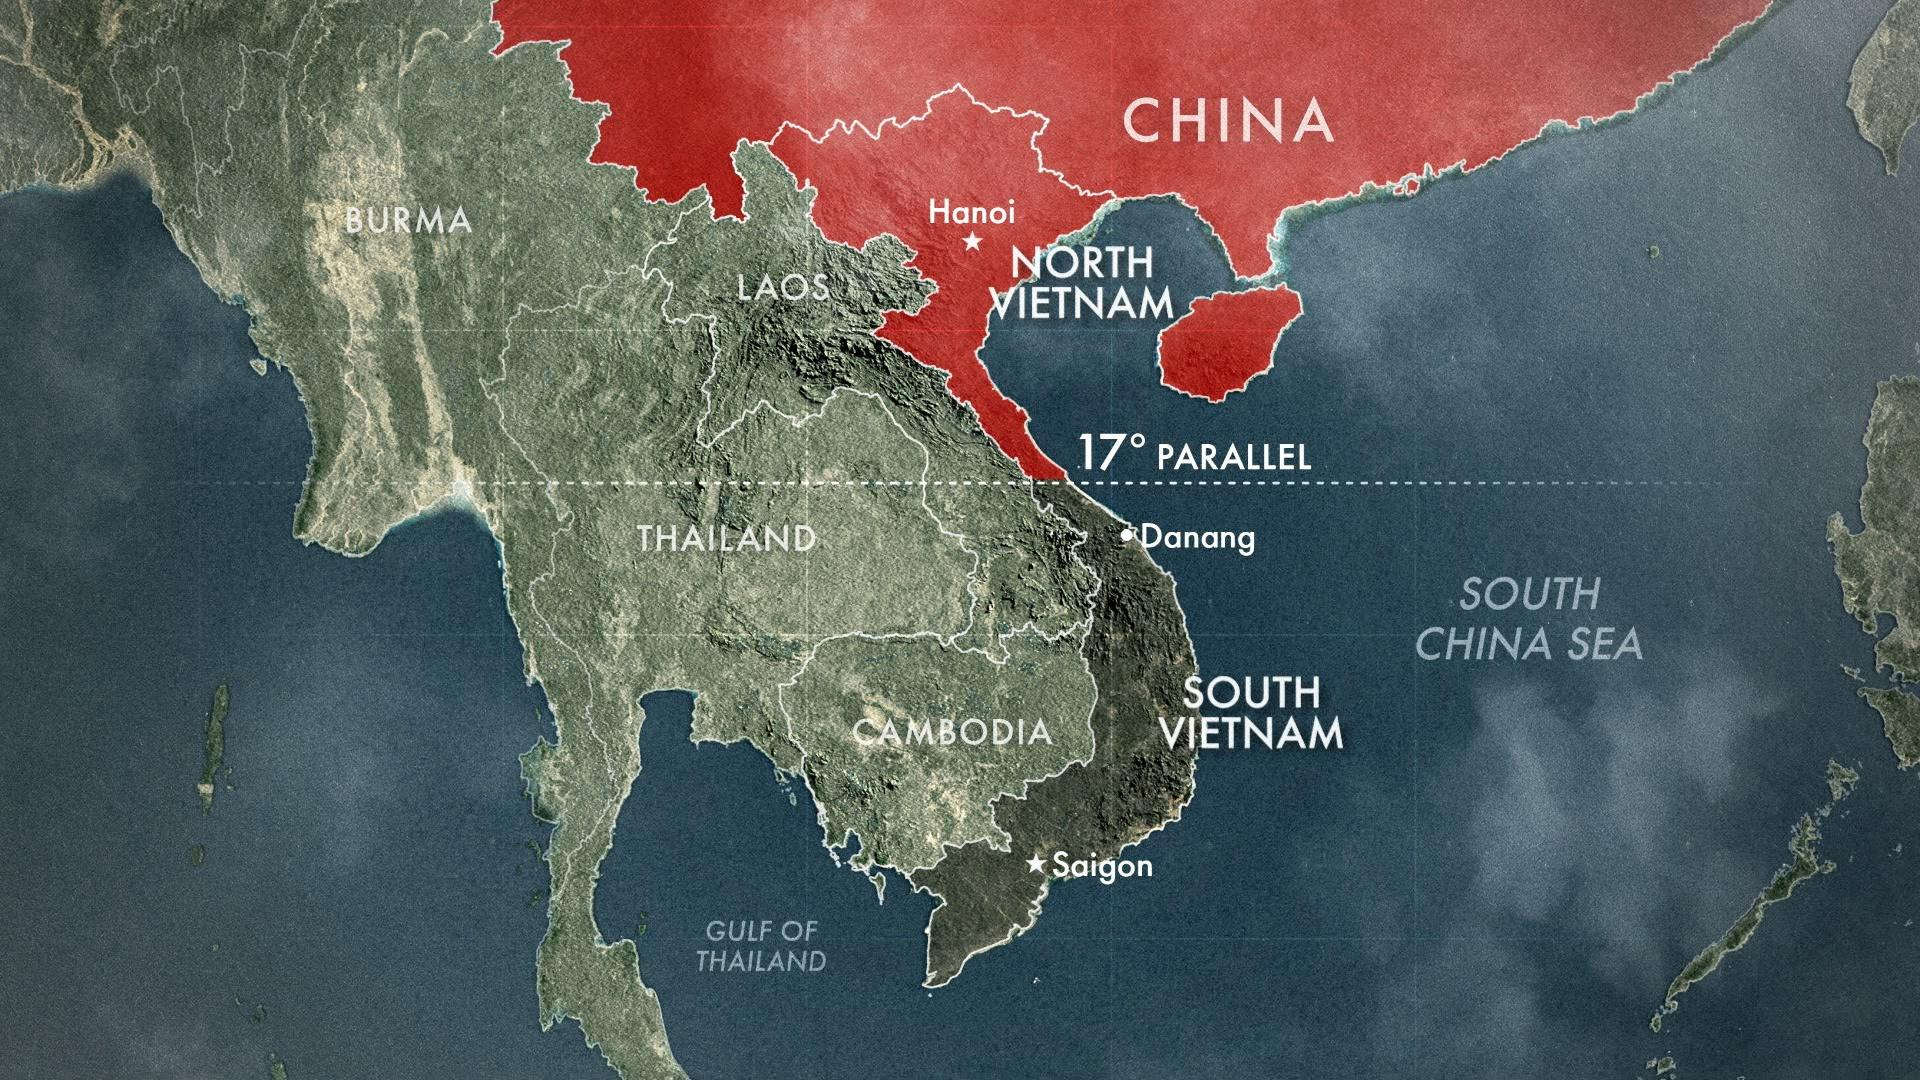 Map of Partitioned Vietnam | The Vietnam War | PBS LearningMedia